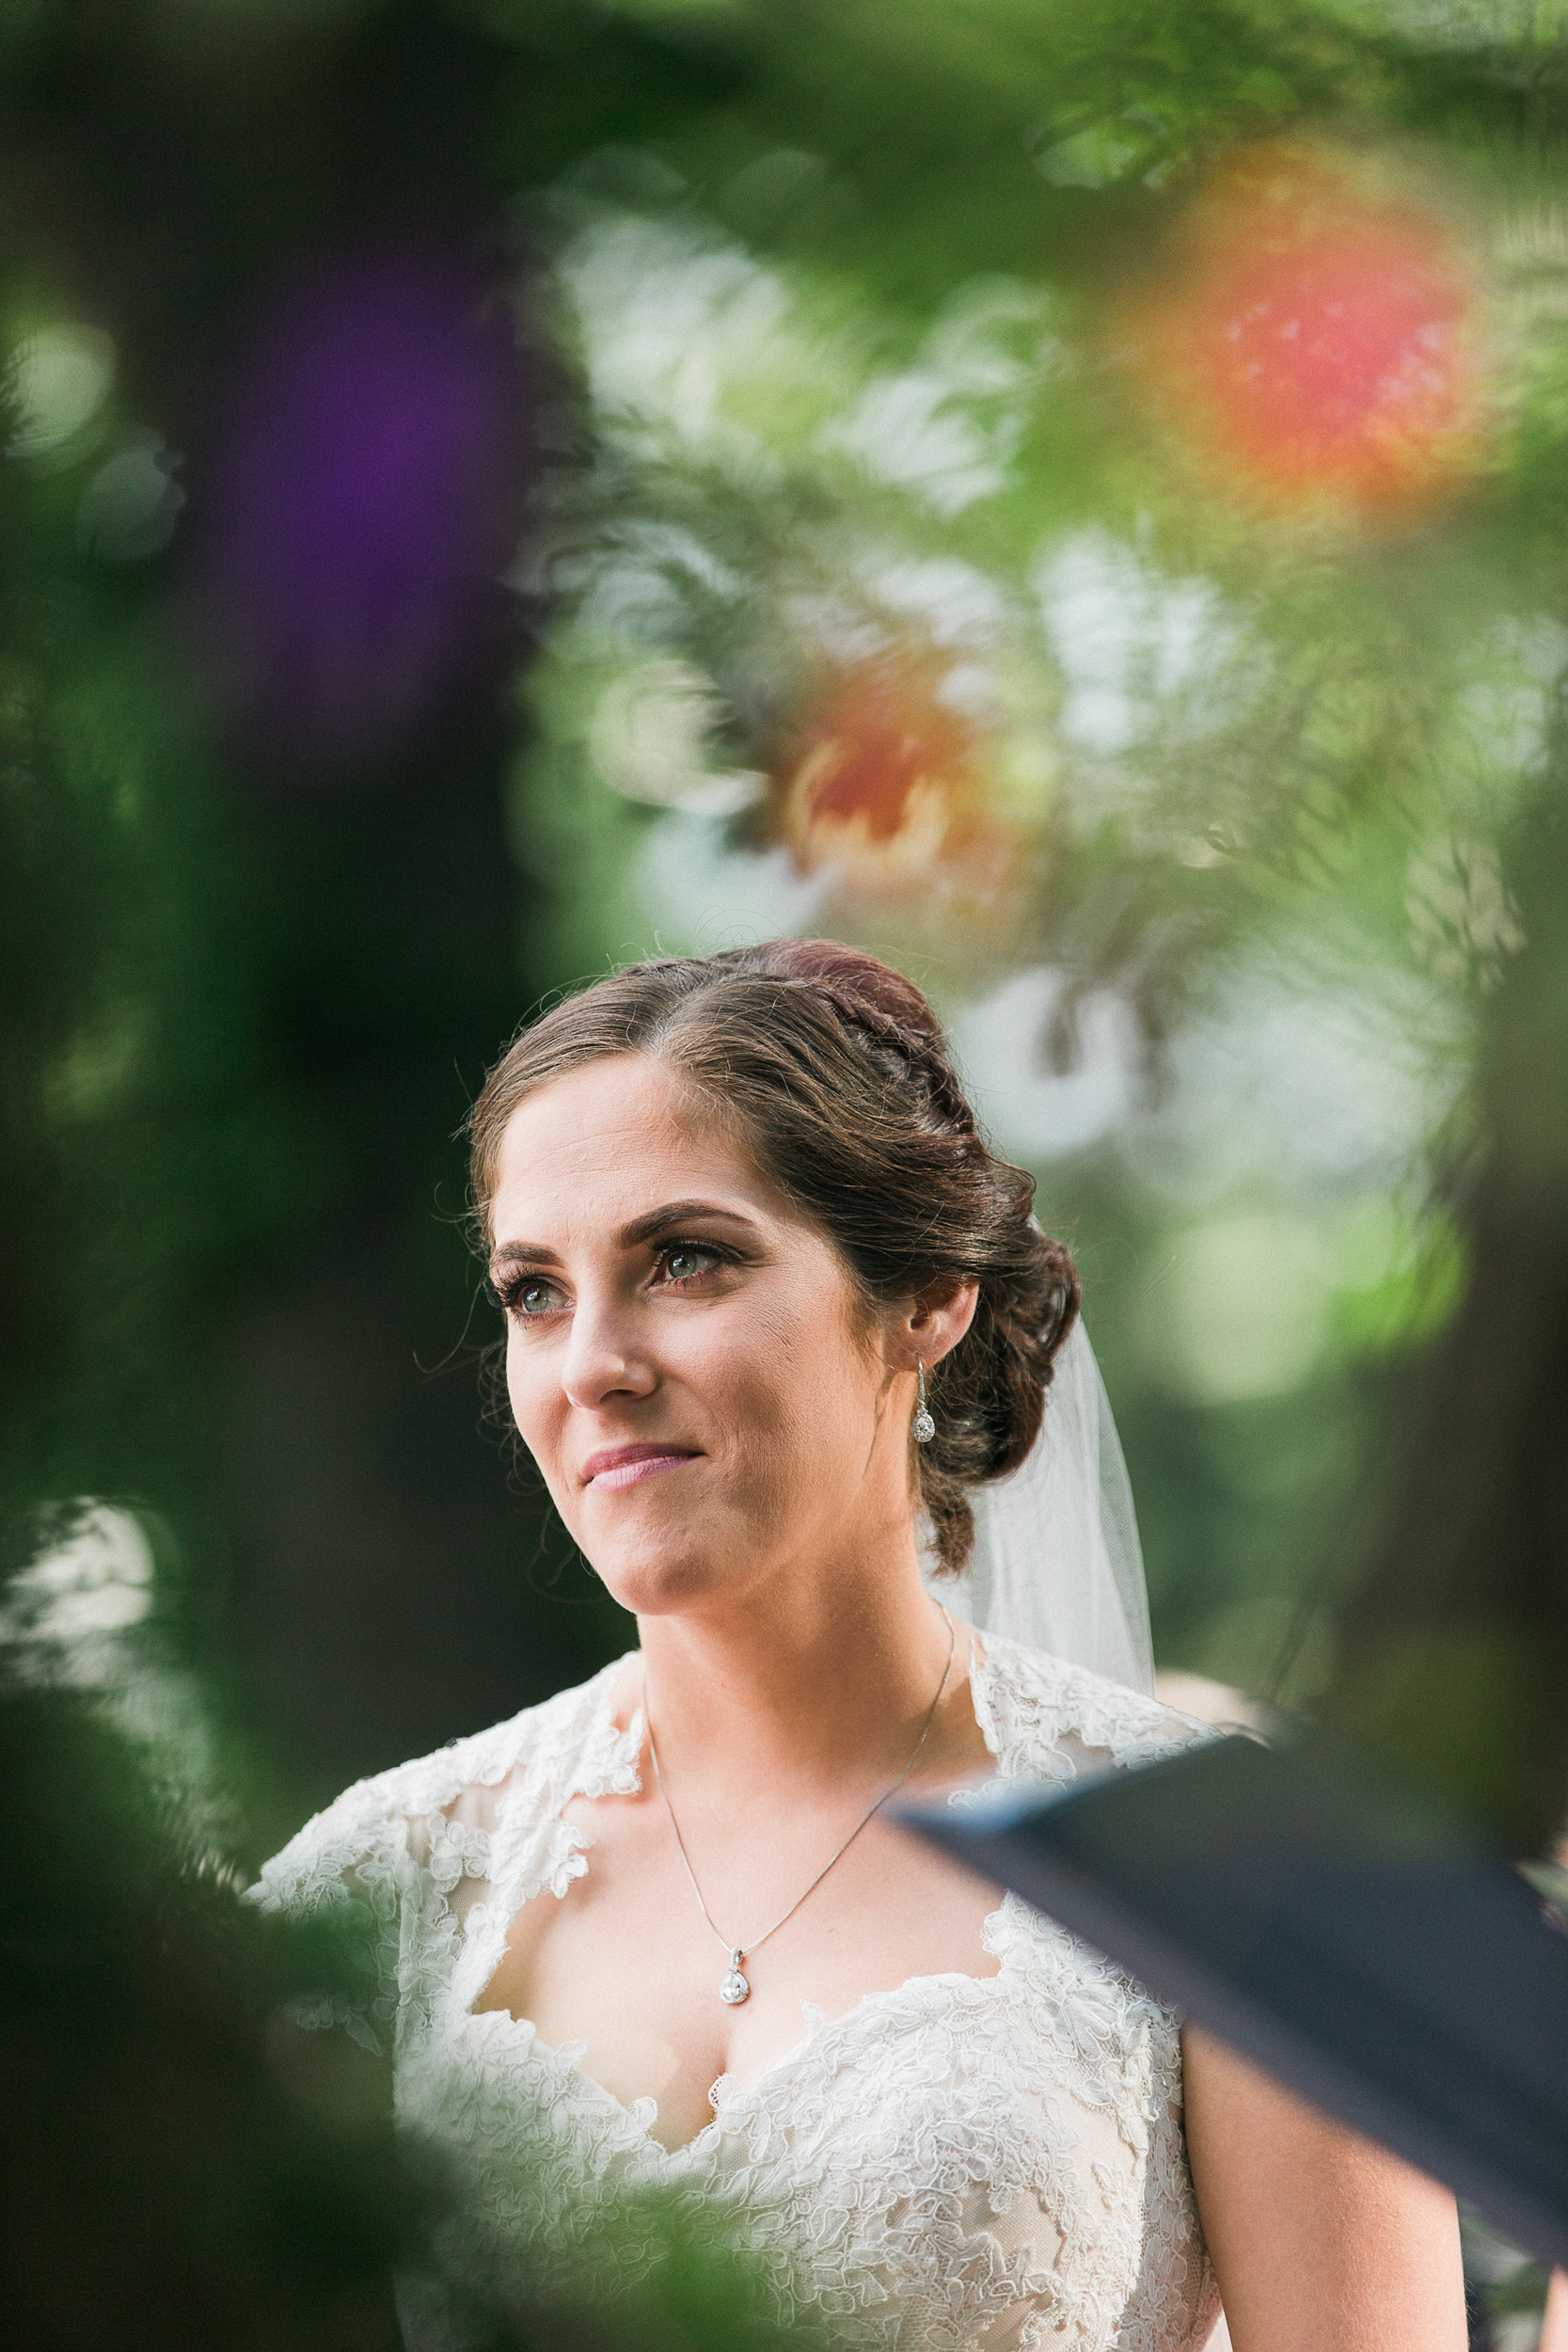 Washington Crossing PA Wedding WRHPhotography-36.jpg